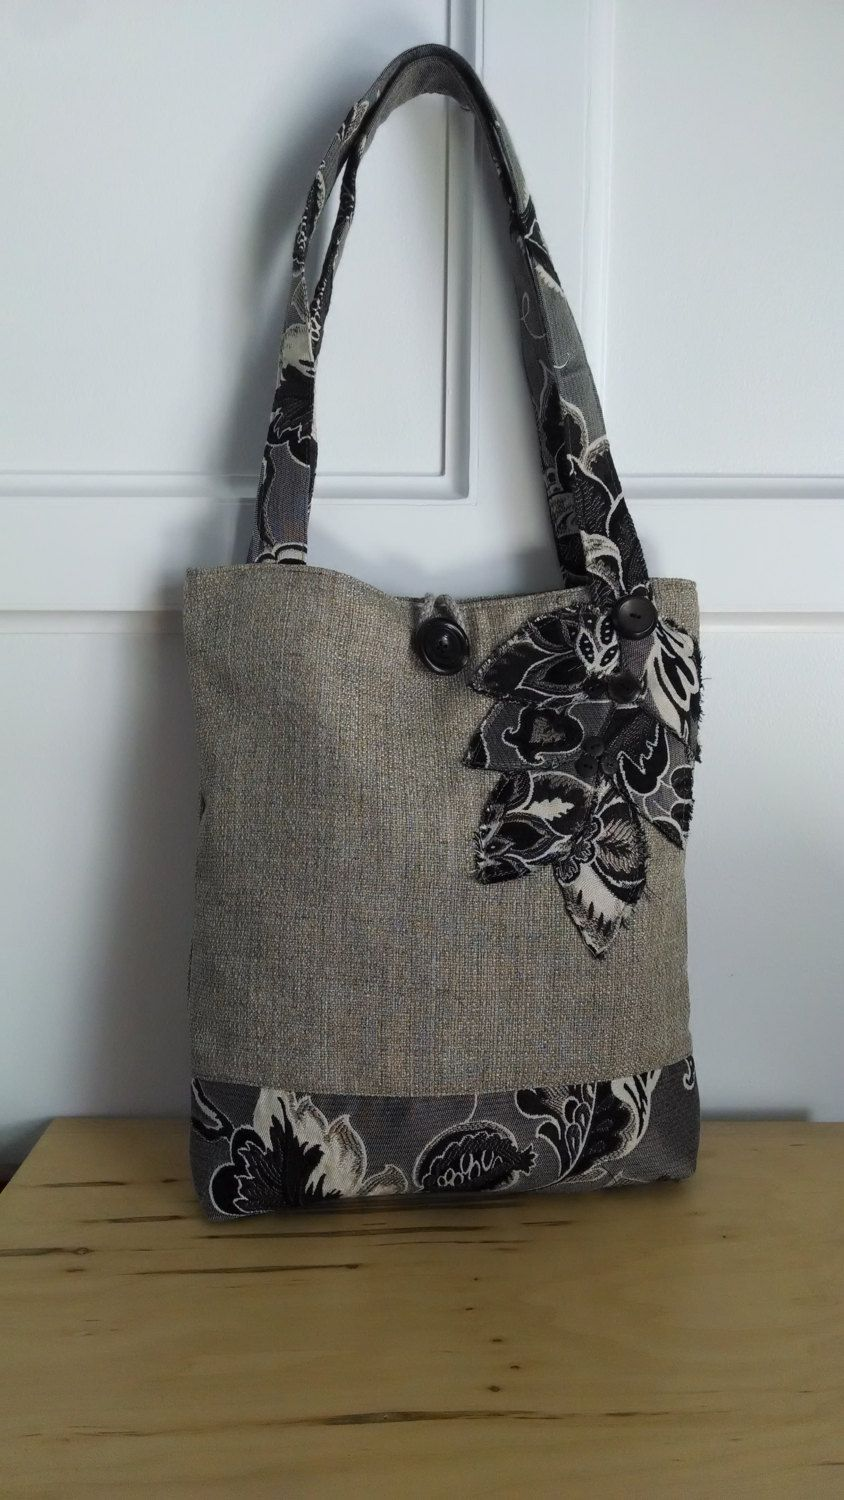 black tote bag brown purse floral handbag travel tote book bag handmade tote bag fabric. Black Bedroom Furniture Sets. Home Design Ideas